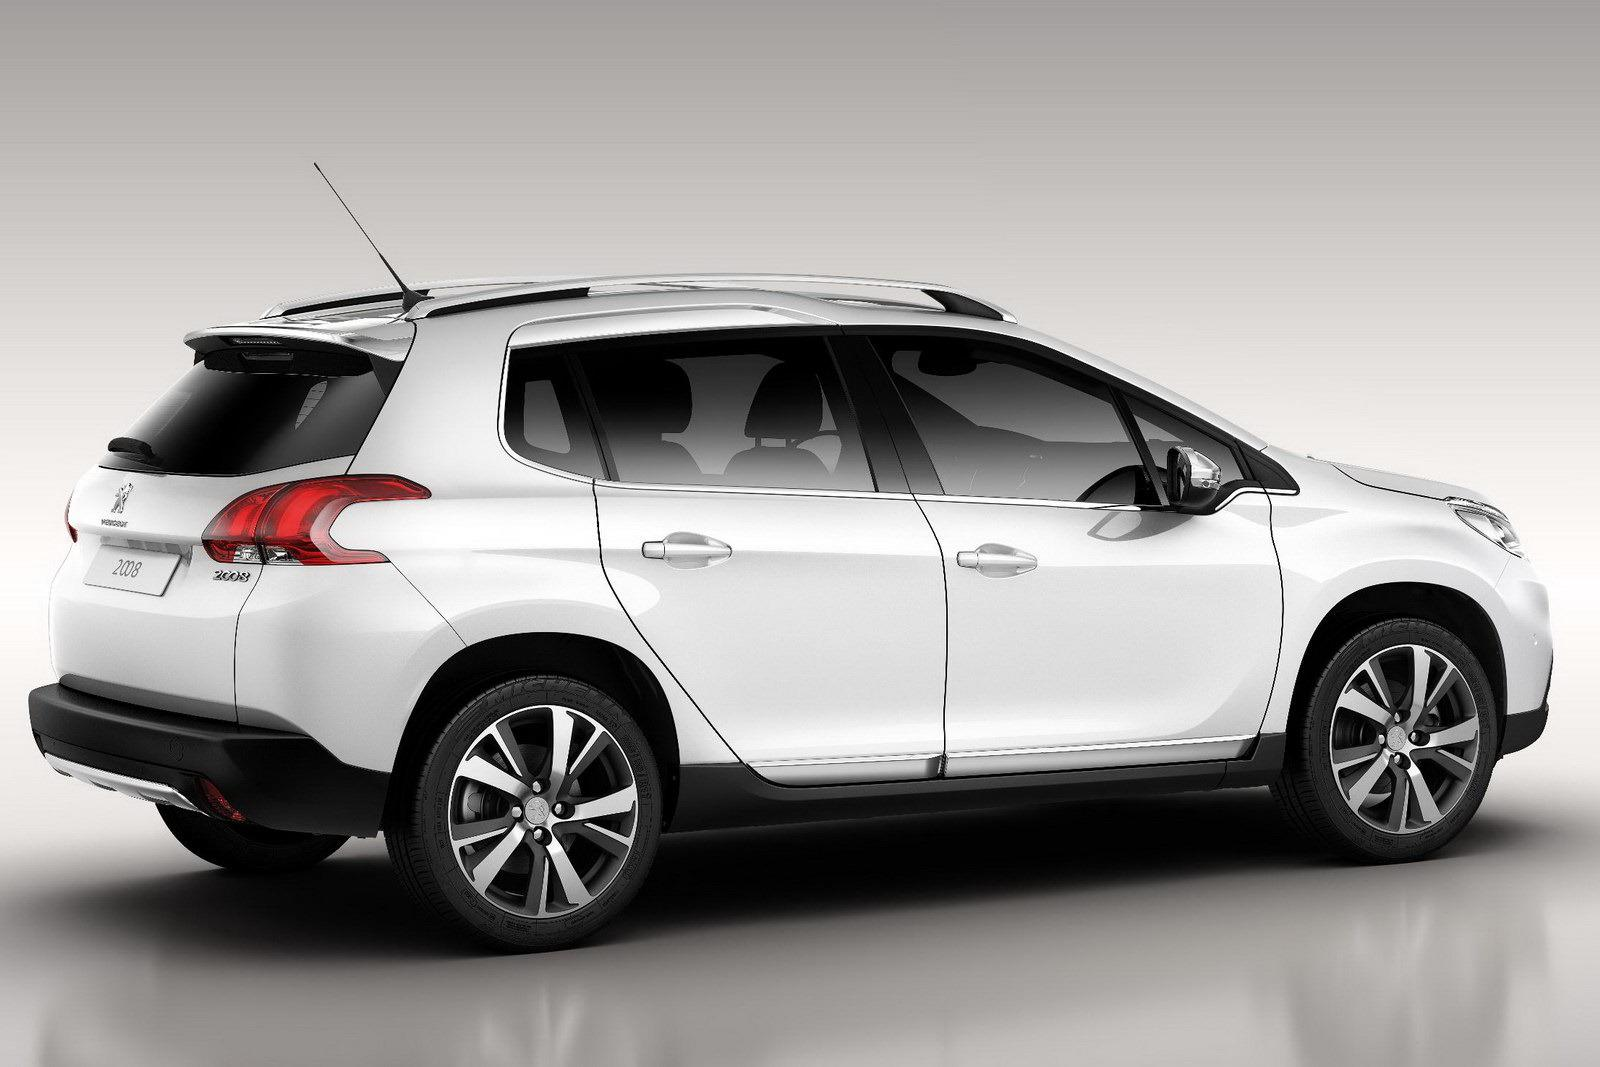 peugeot 2008 Wallpaper Car Free Download Image Of